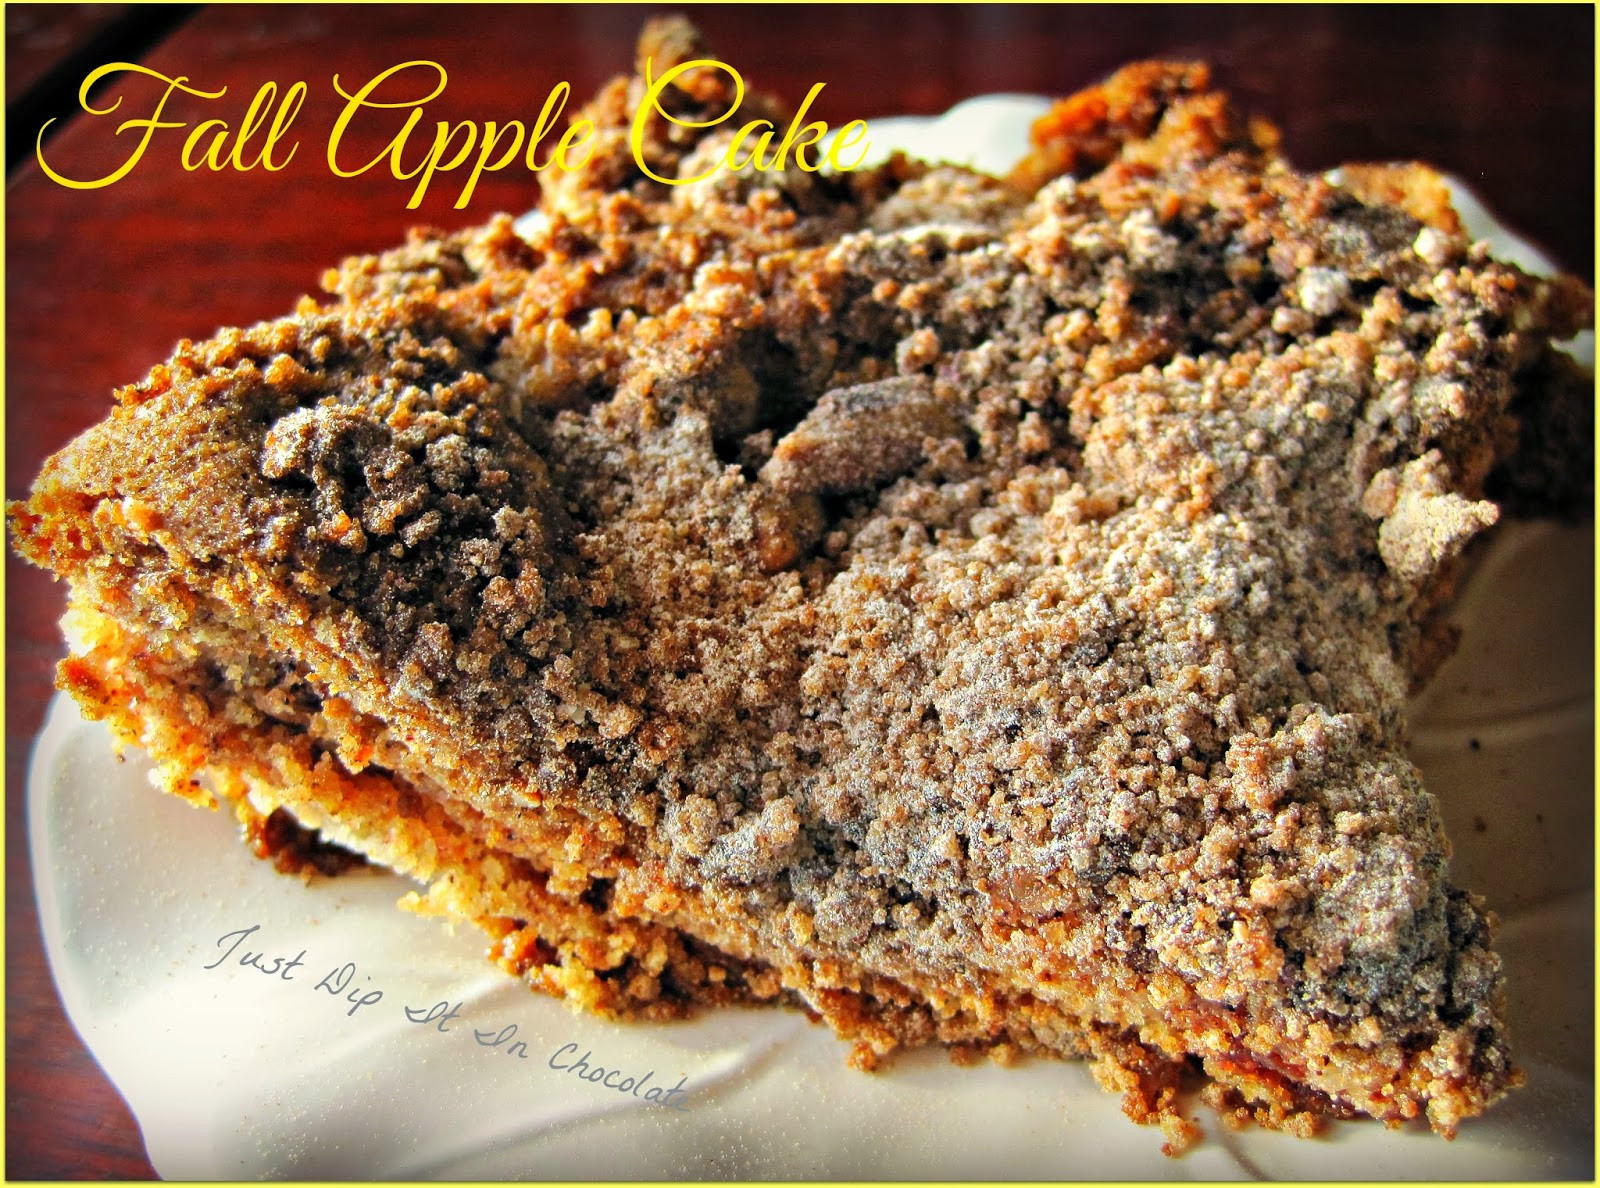 Fall Apple Recipes  Just Dip It In Chocolate Fall Apple Cake Recipe